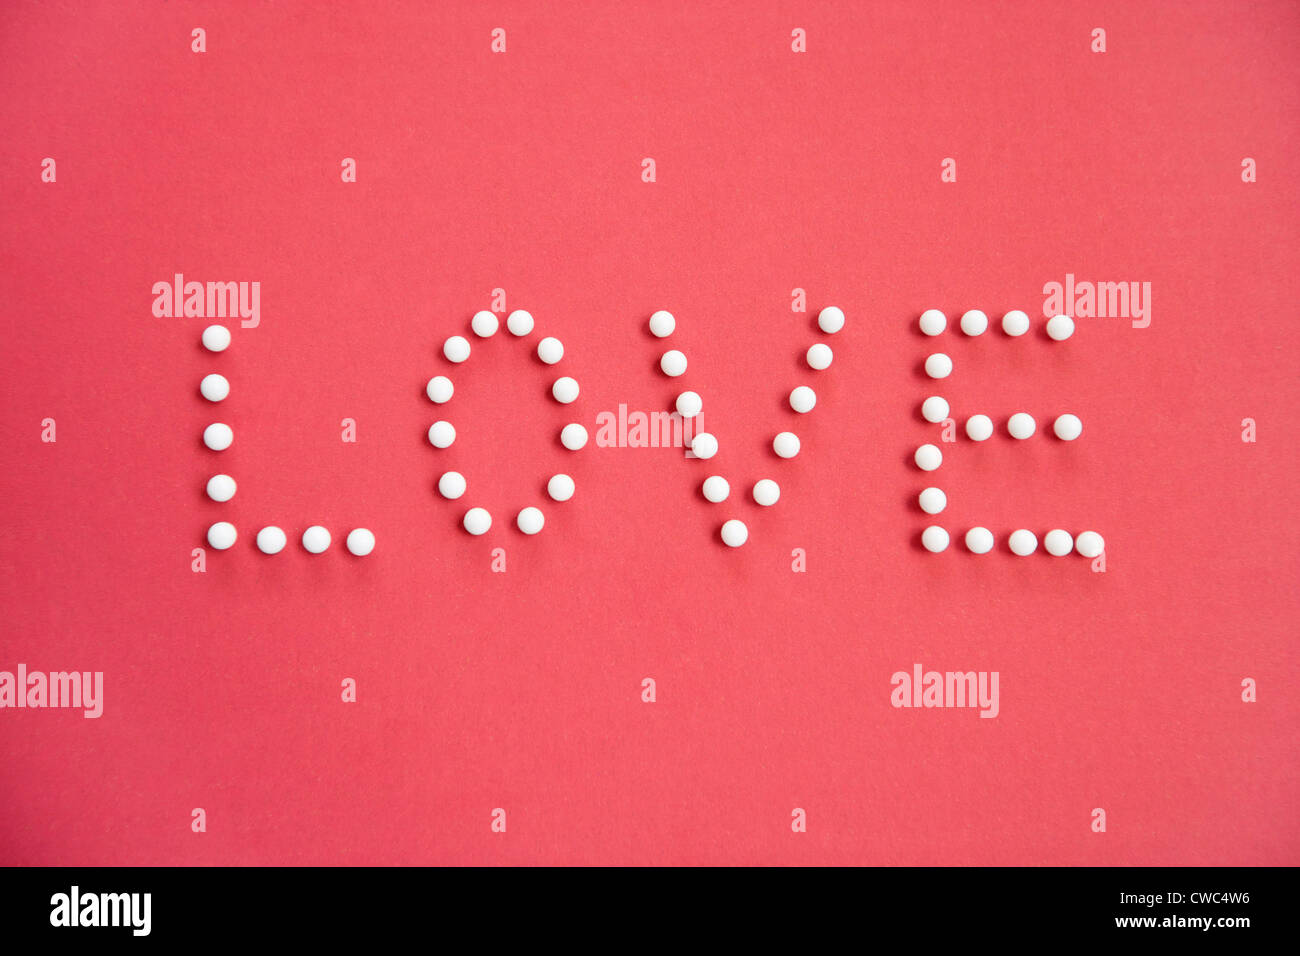 Close-up of push pins spelling love over colored background - Stock Image